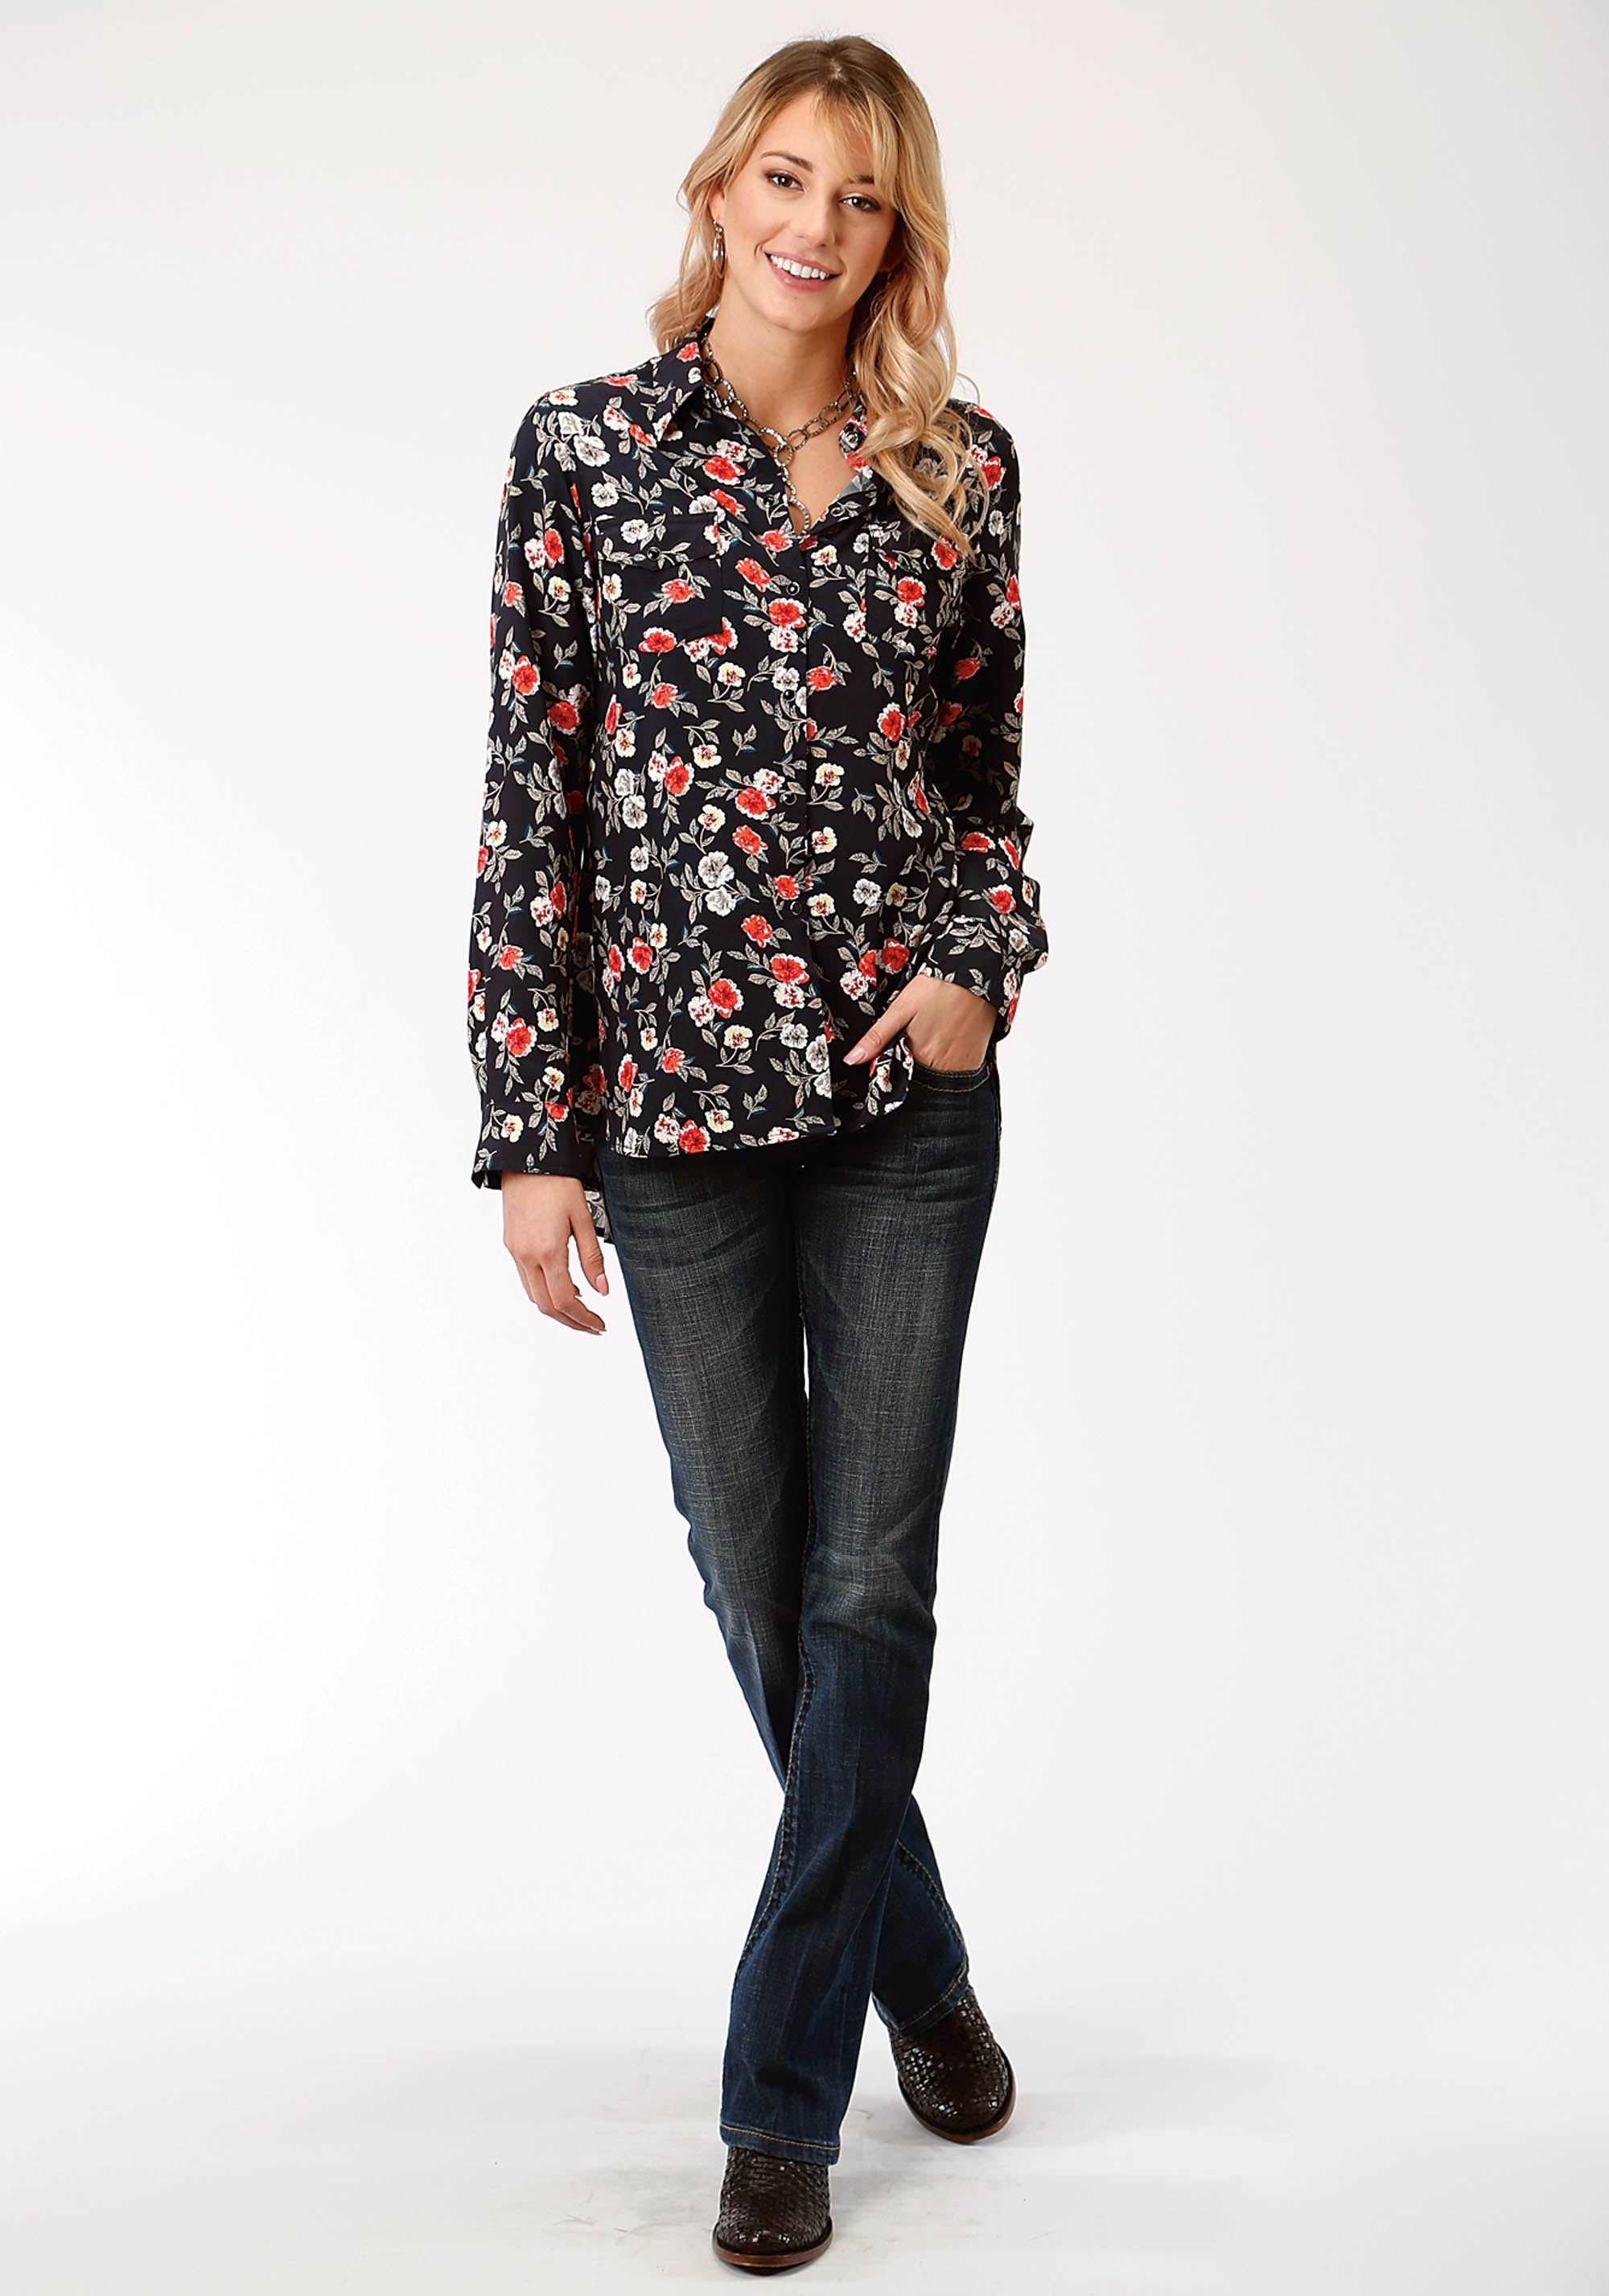 ROPER WOMENS BLACK 6127 FLORAL PRINT RAYON BLOUSE STUDIO WEST- GYPSY ROSES LONG SLEEVE